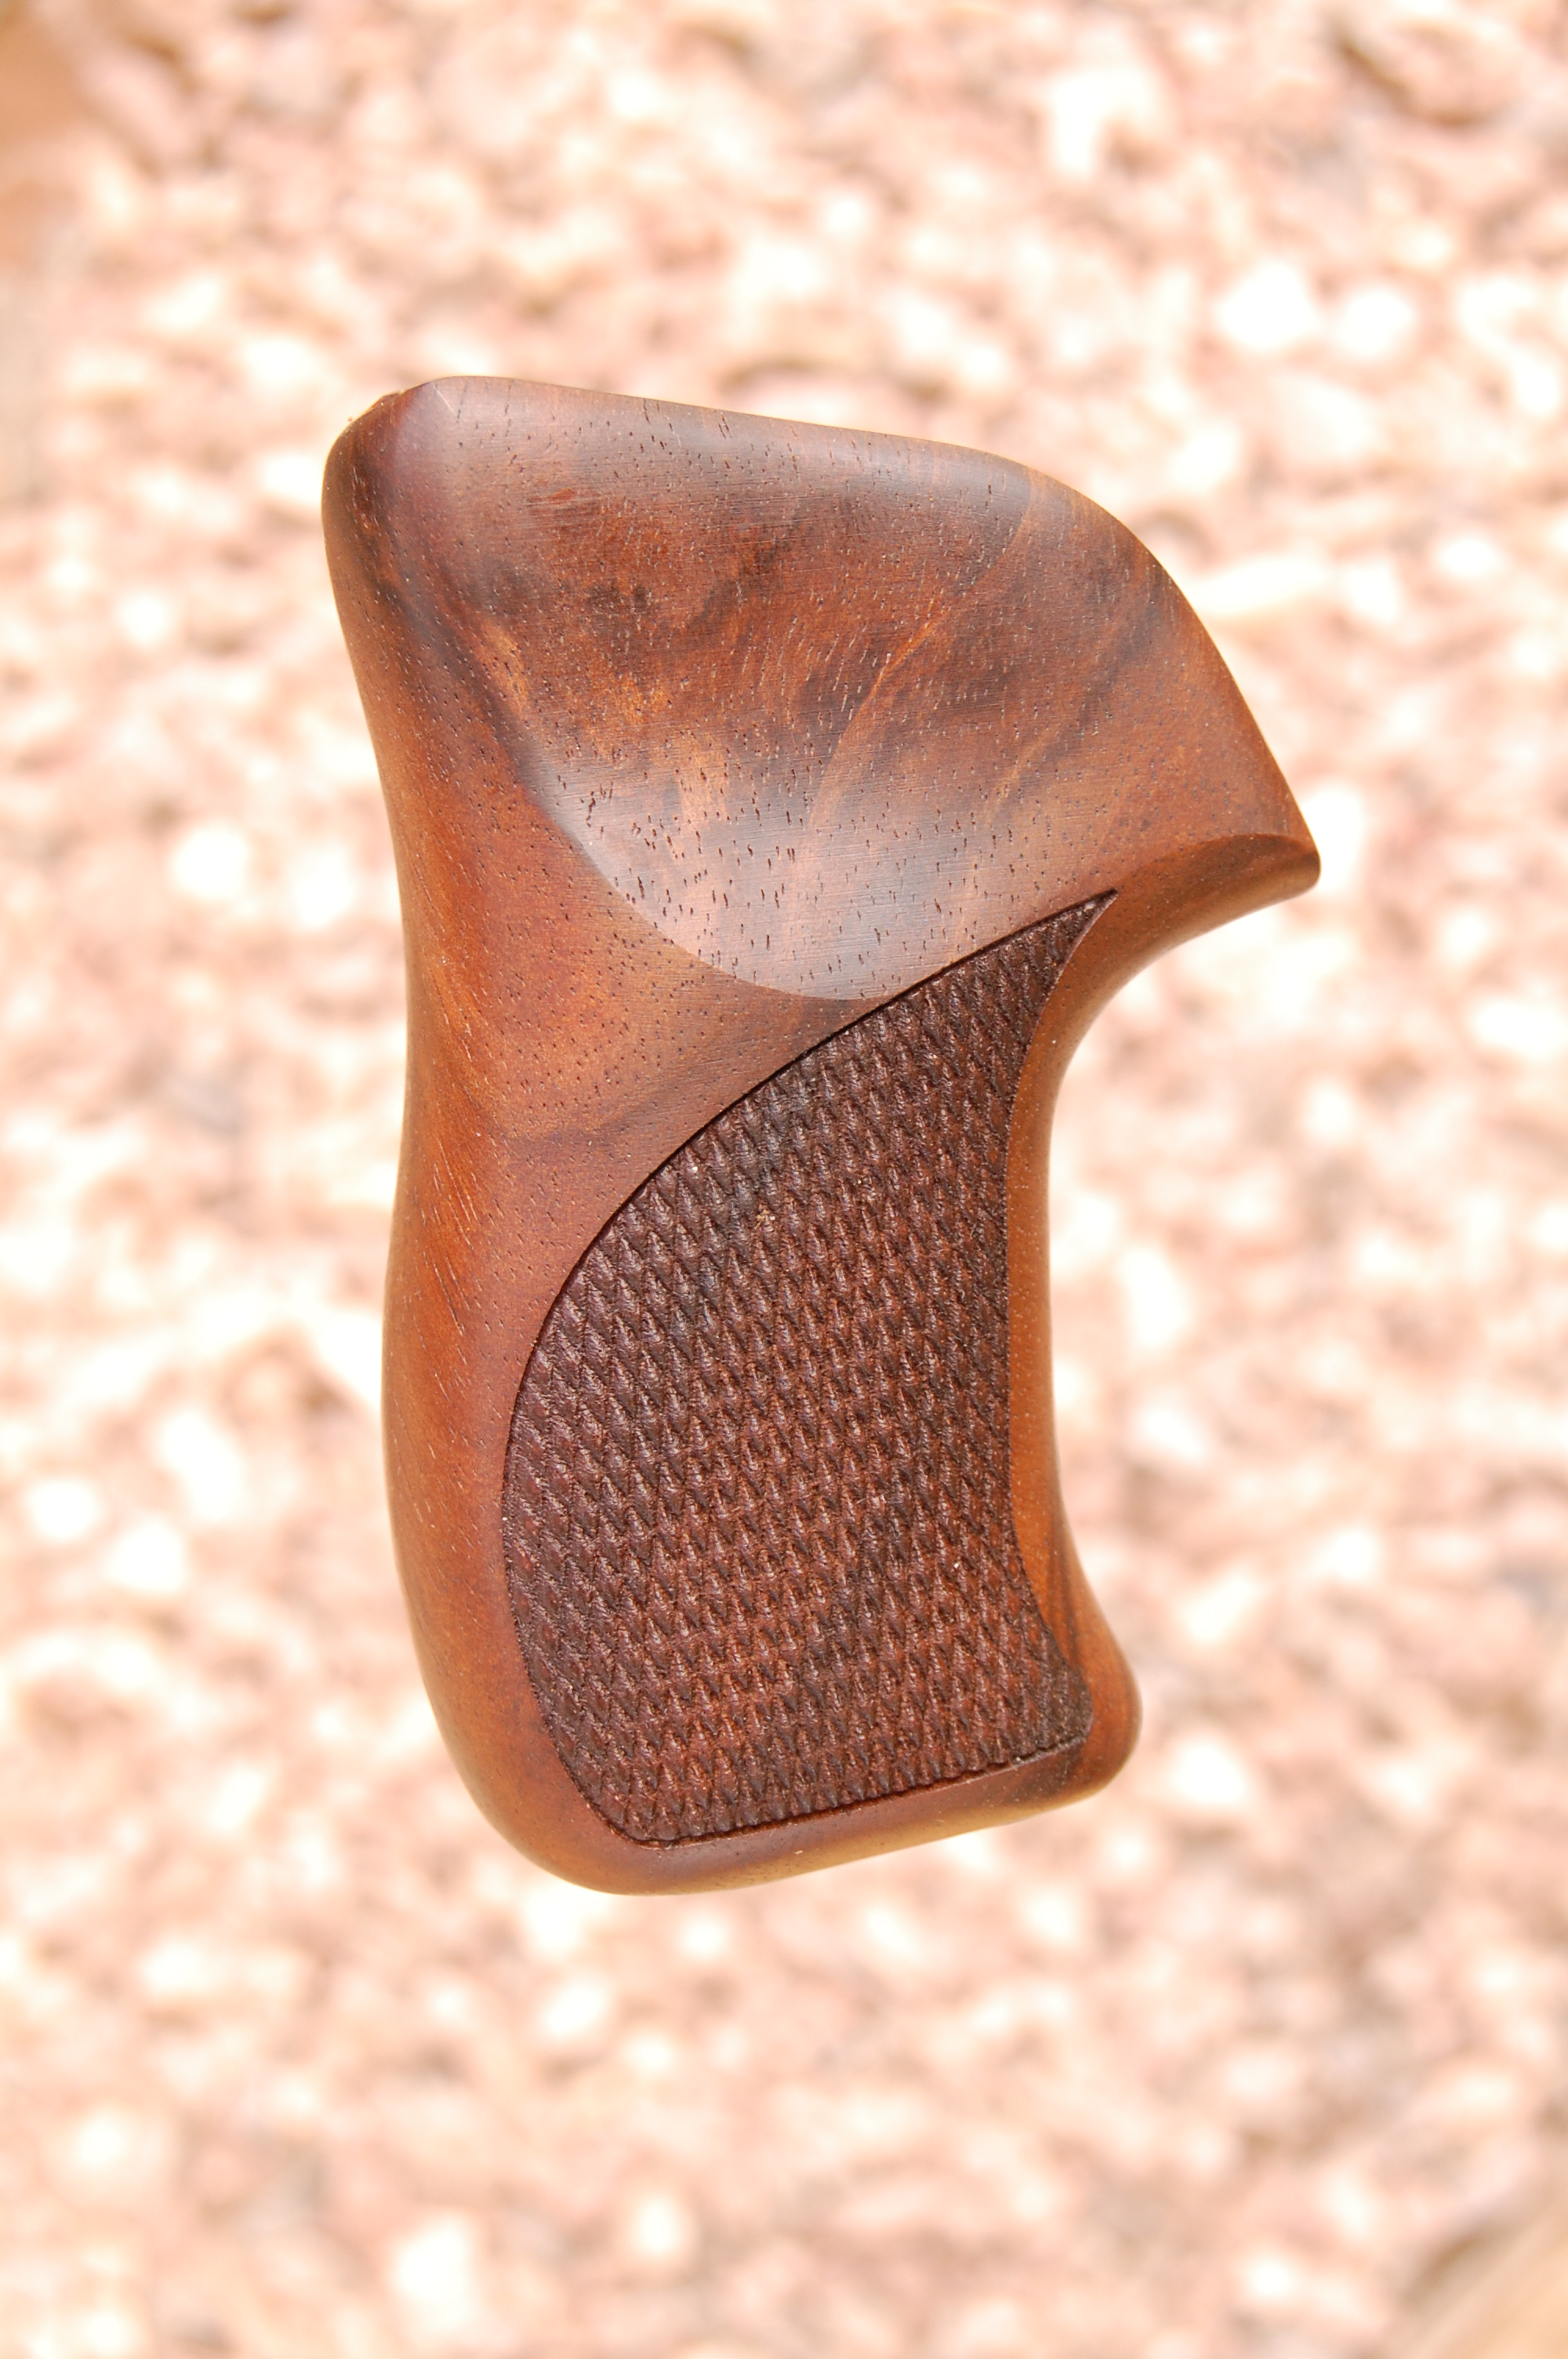 RUGER LCR grip (checkered) - full size